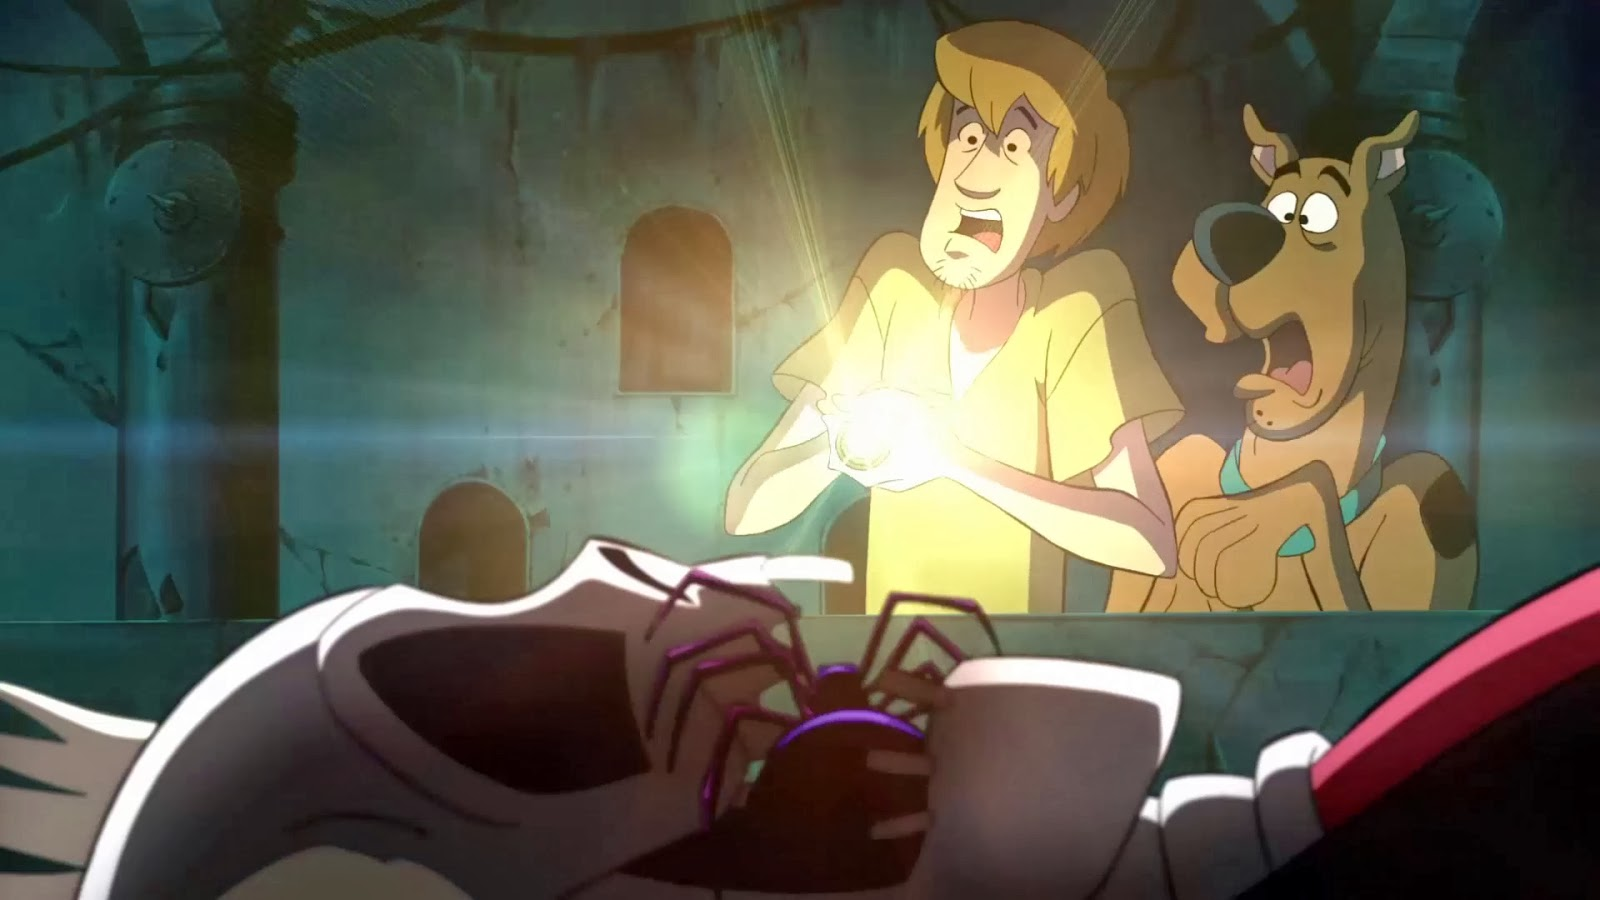 scooby doo camp scare full movie download 720p